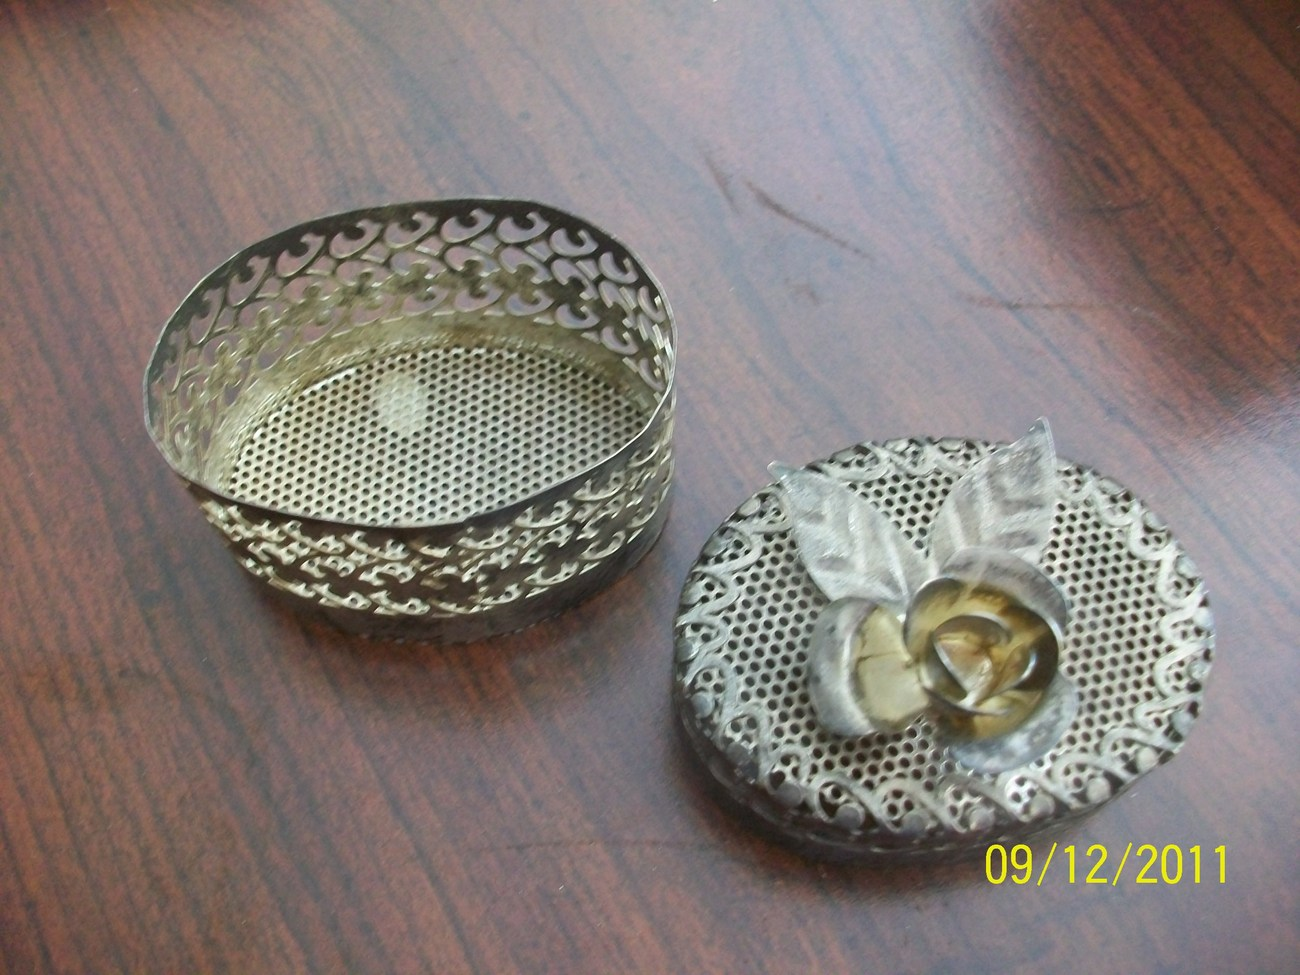 Vintage ANTIQUE 19c CENTURY Chinese IRON JEWELRY BOX with a